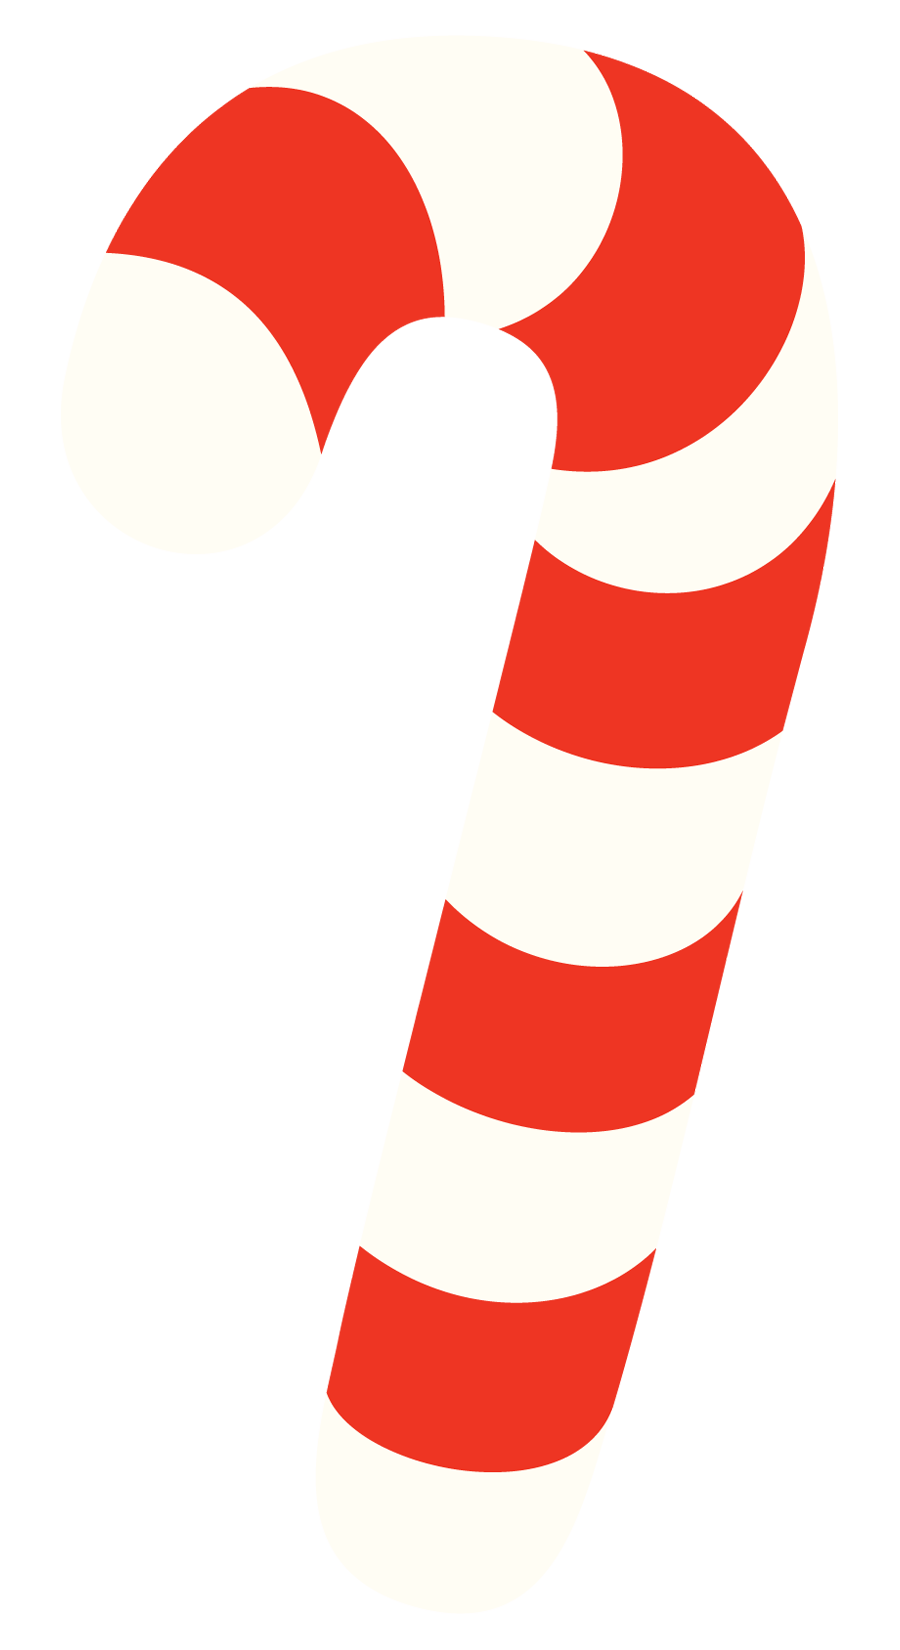 Christmas candy cane clipart jpg freeuse Candy cane free to use cliparts - Clipartix jpg freeuse